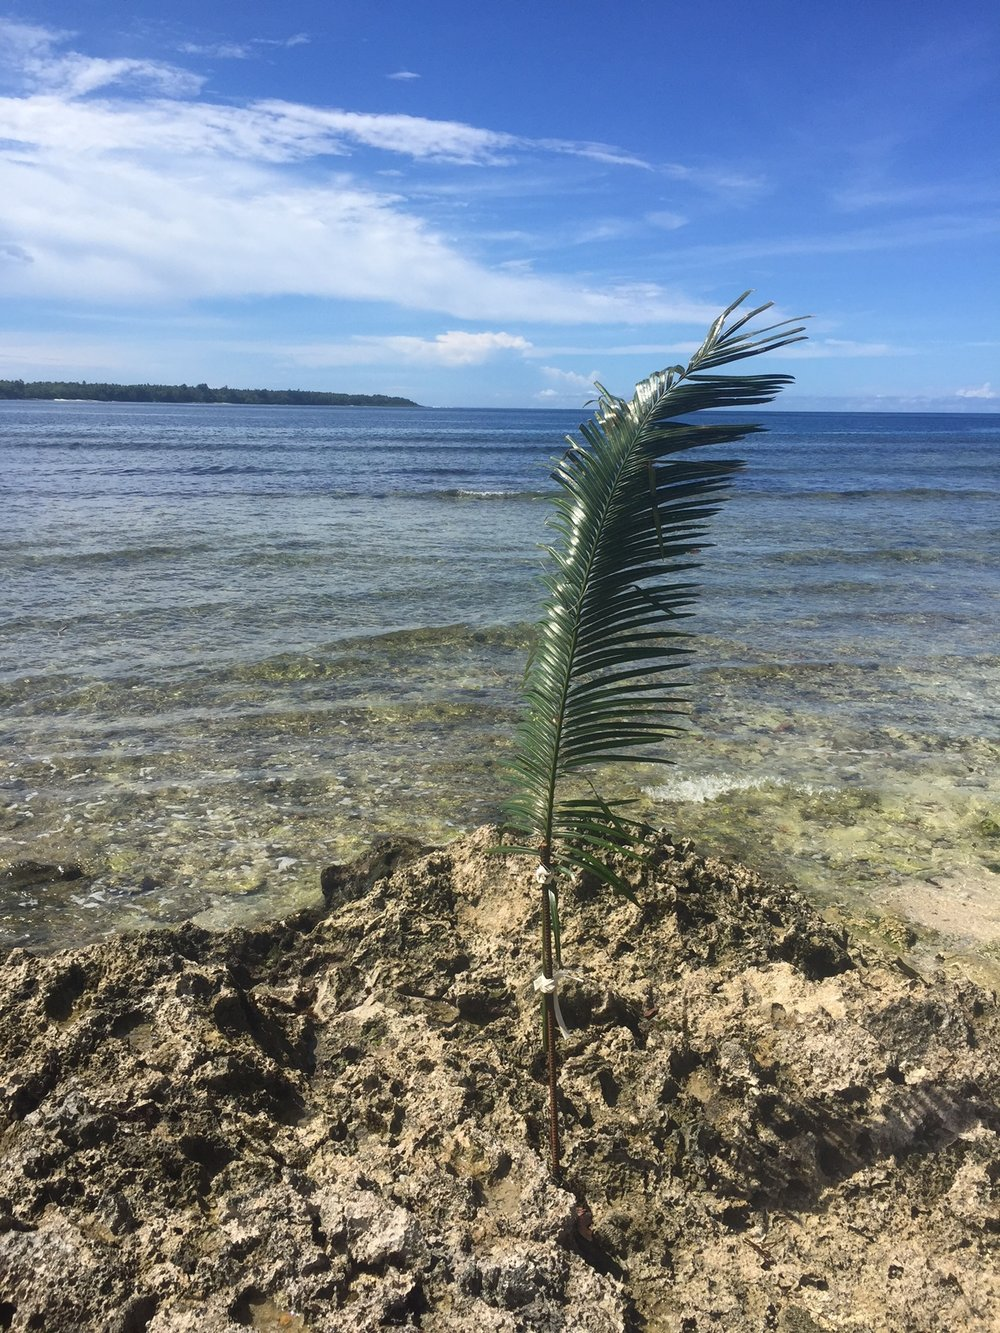 How's this for sustainability...The local chief of Pango in Vanuatu orders many of these cycads to be placed in and around the water front. It sends a very clear message to the local ni-Vans that no shell fish are allowed to be collected. Why? Well it's simple - if the cycads are out, it means shell fish stocks are running low. So the chief who is responsible for these waters, this land and the local people in this region, says no more fishing for shell fish. Until he decrees that shell fish in the region has been replenished (maybe in a few months time) these cycads will remain, indicating the ban is in place.